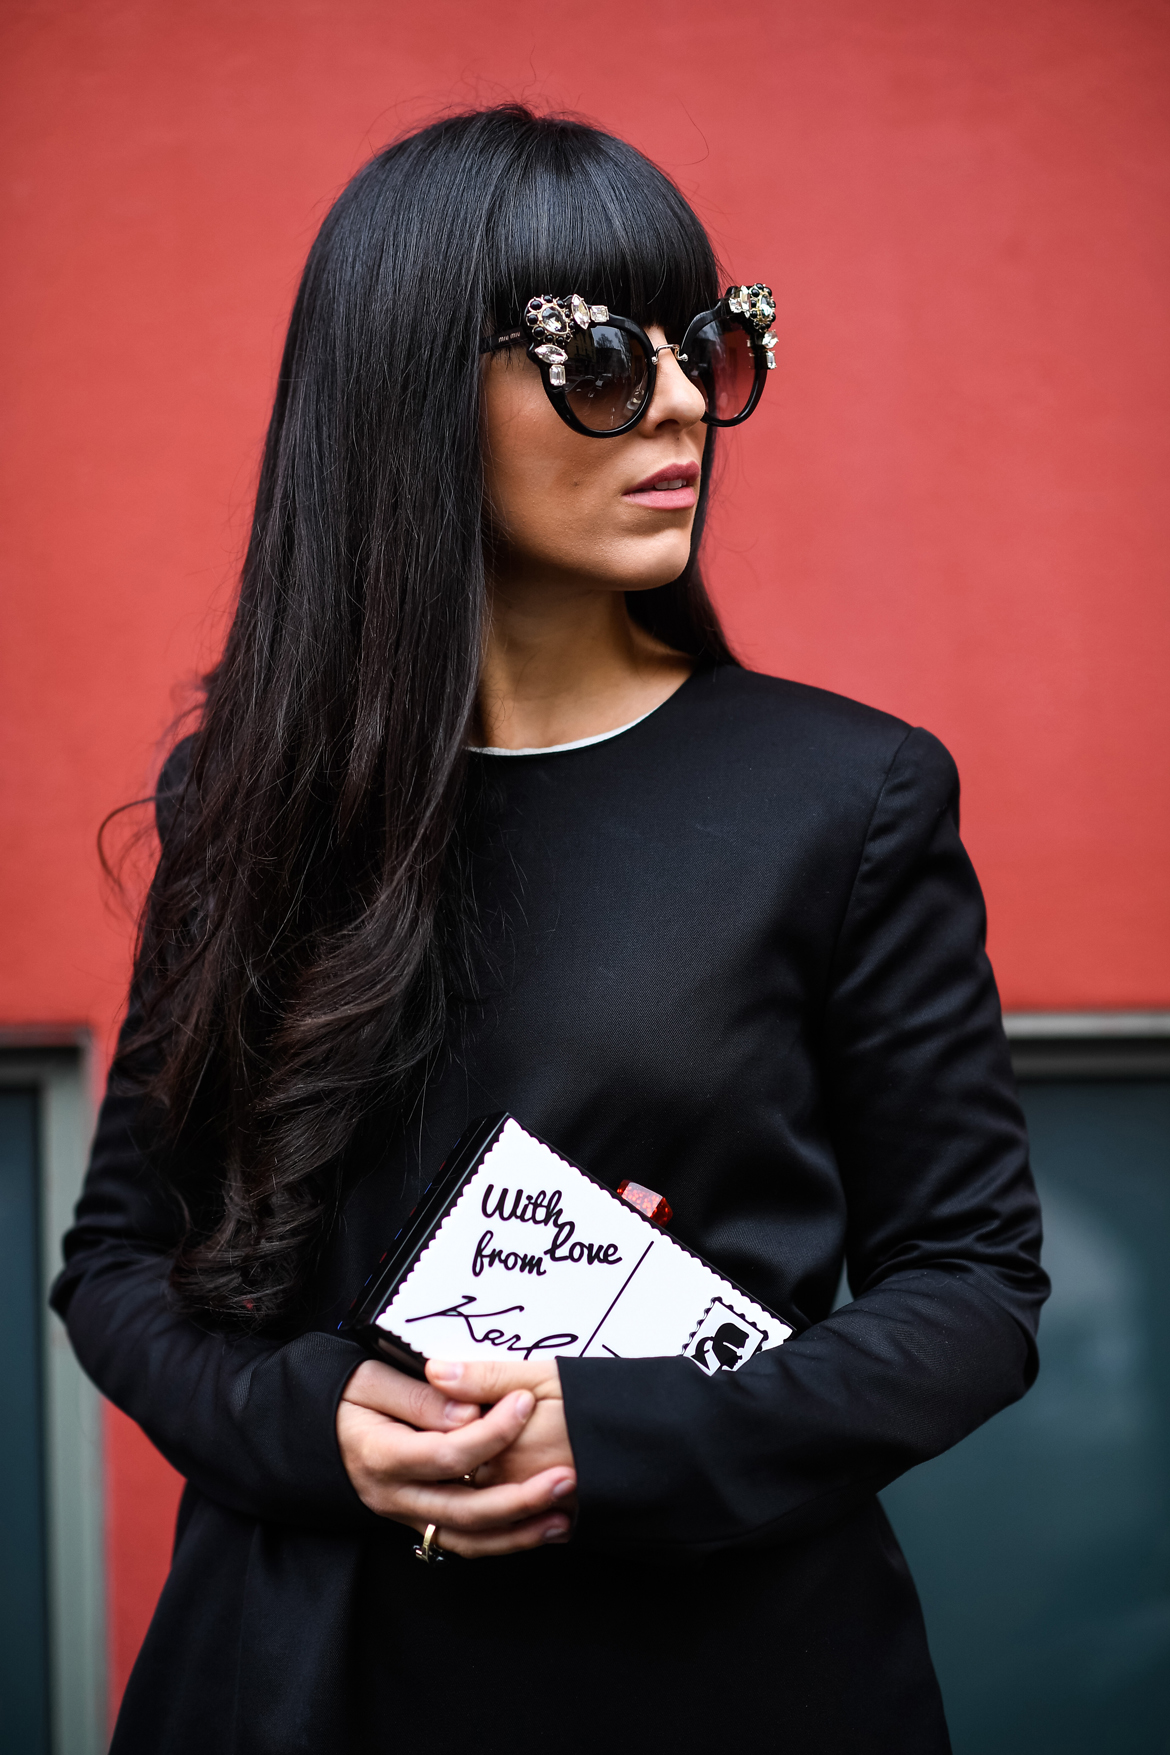 Milan Fashion Week - Accessori per personalizzare un look total black - Laura Comolli indossa abito Calcaterra e accessori presi su Zalando